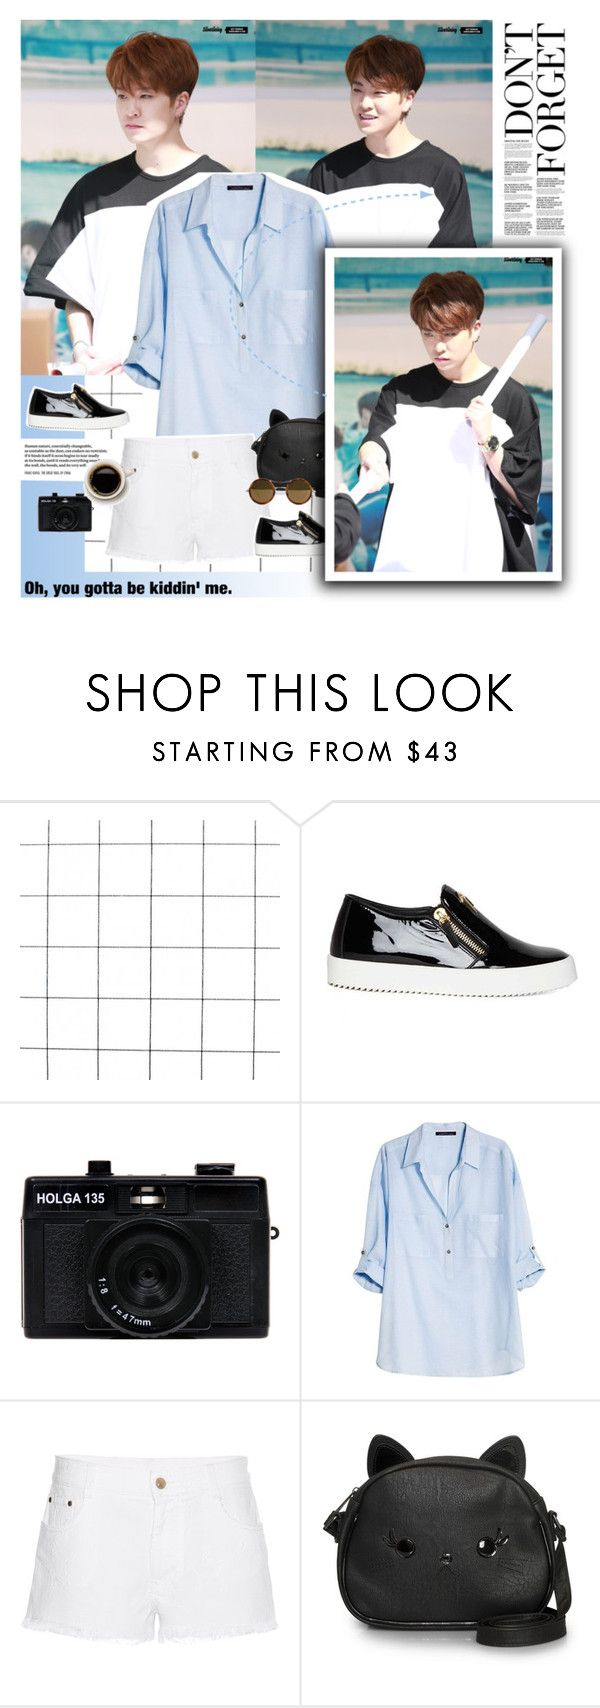 """Always be happy."" by blue-park ❤ liked on Polyvore featuring Giuseppe Zanotti, Holga, Violeta by Mango, STELLA McCARTNEY, Loungefly, Kyme, vintage, youngjae and GOT7"